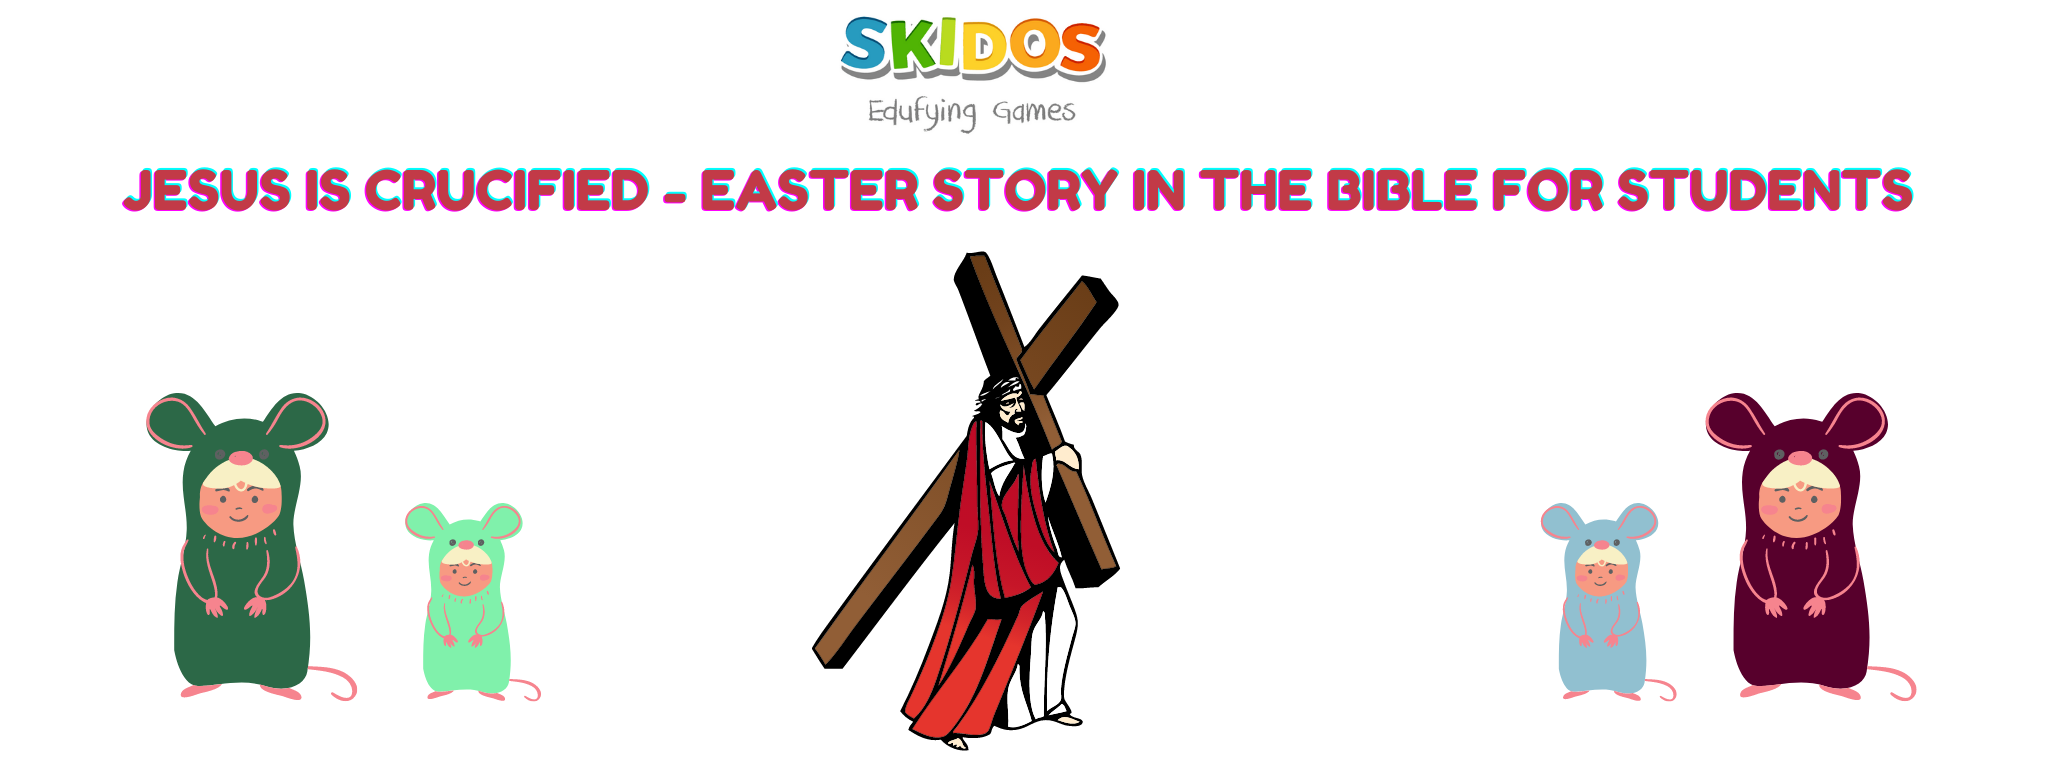 Easter story in the bible for kids